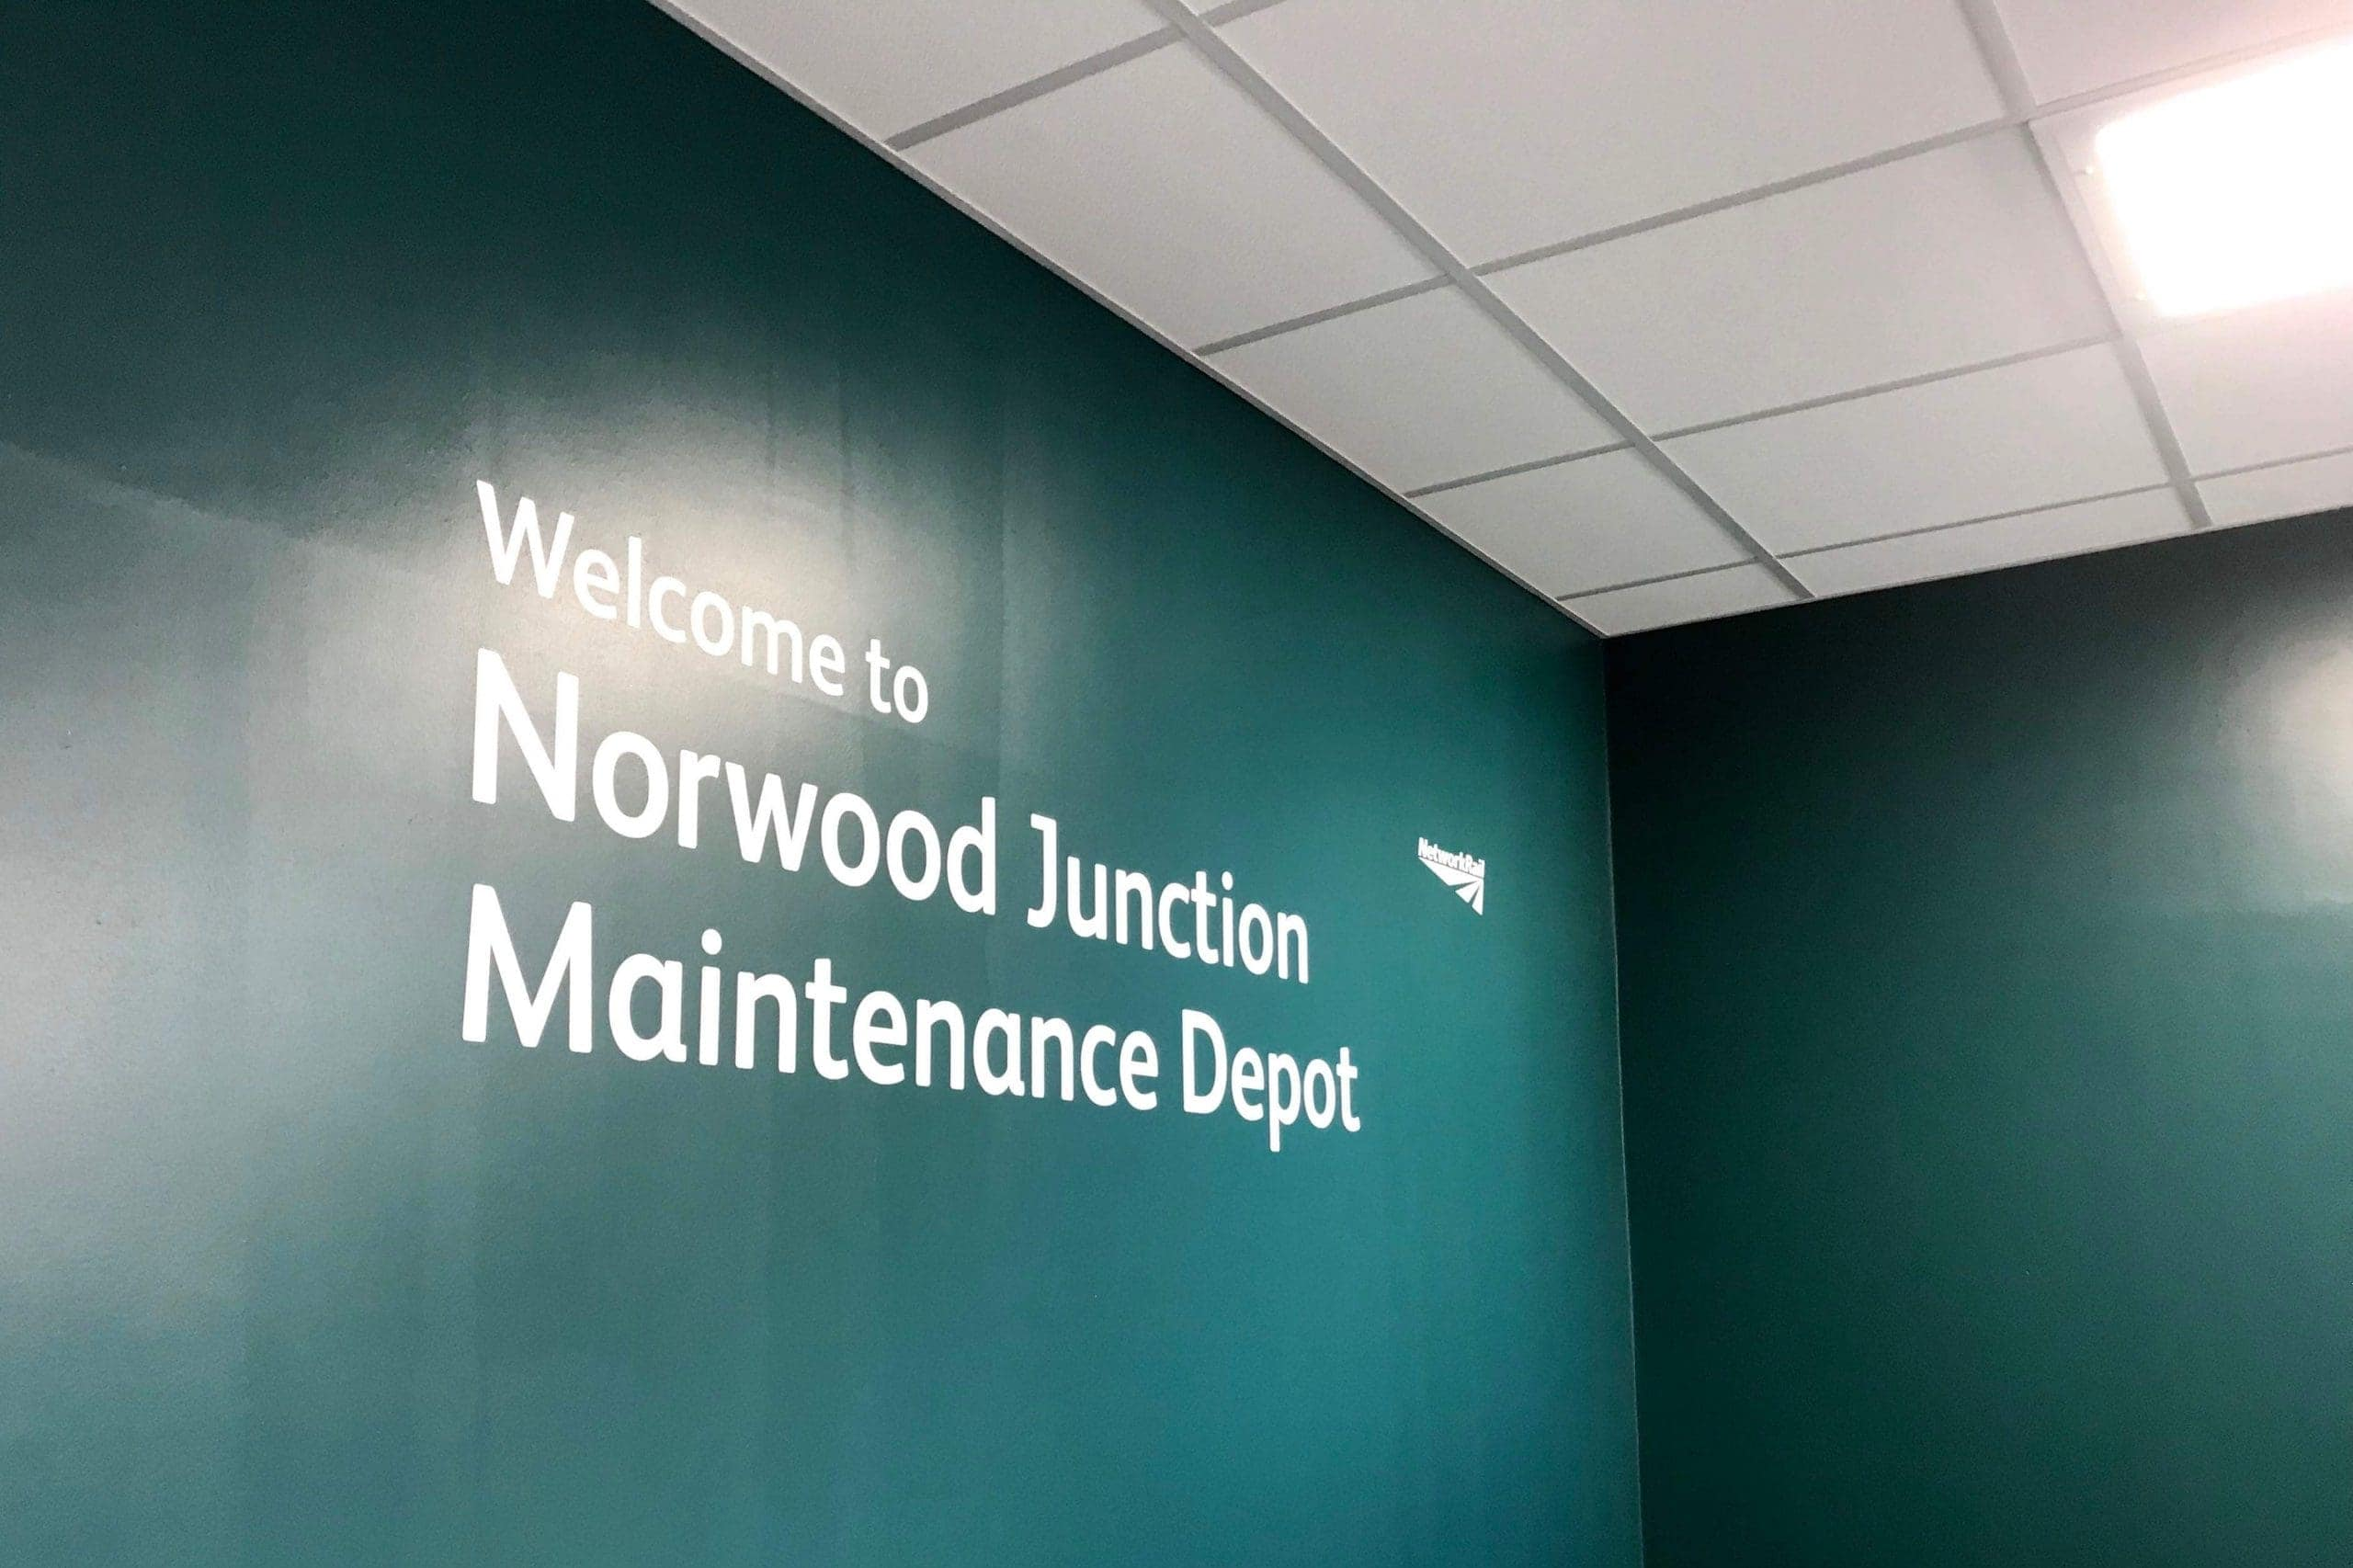 Norwood junction maintenance depot welcome wall where large commercial air conditioning solution by SubCool FM